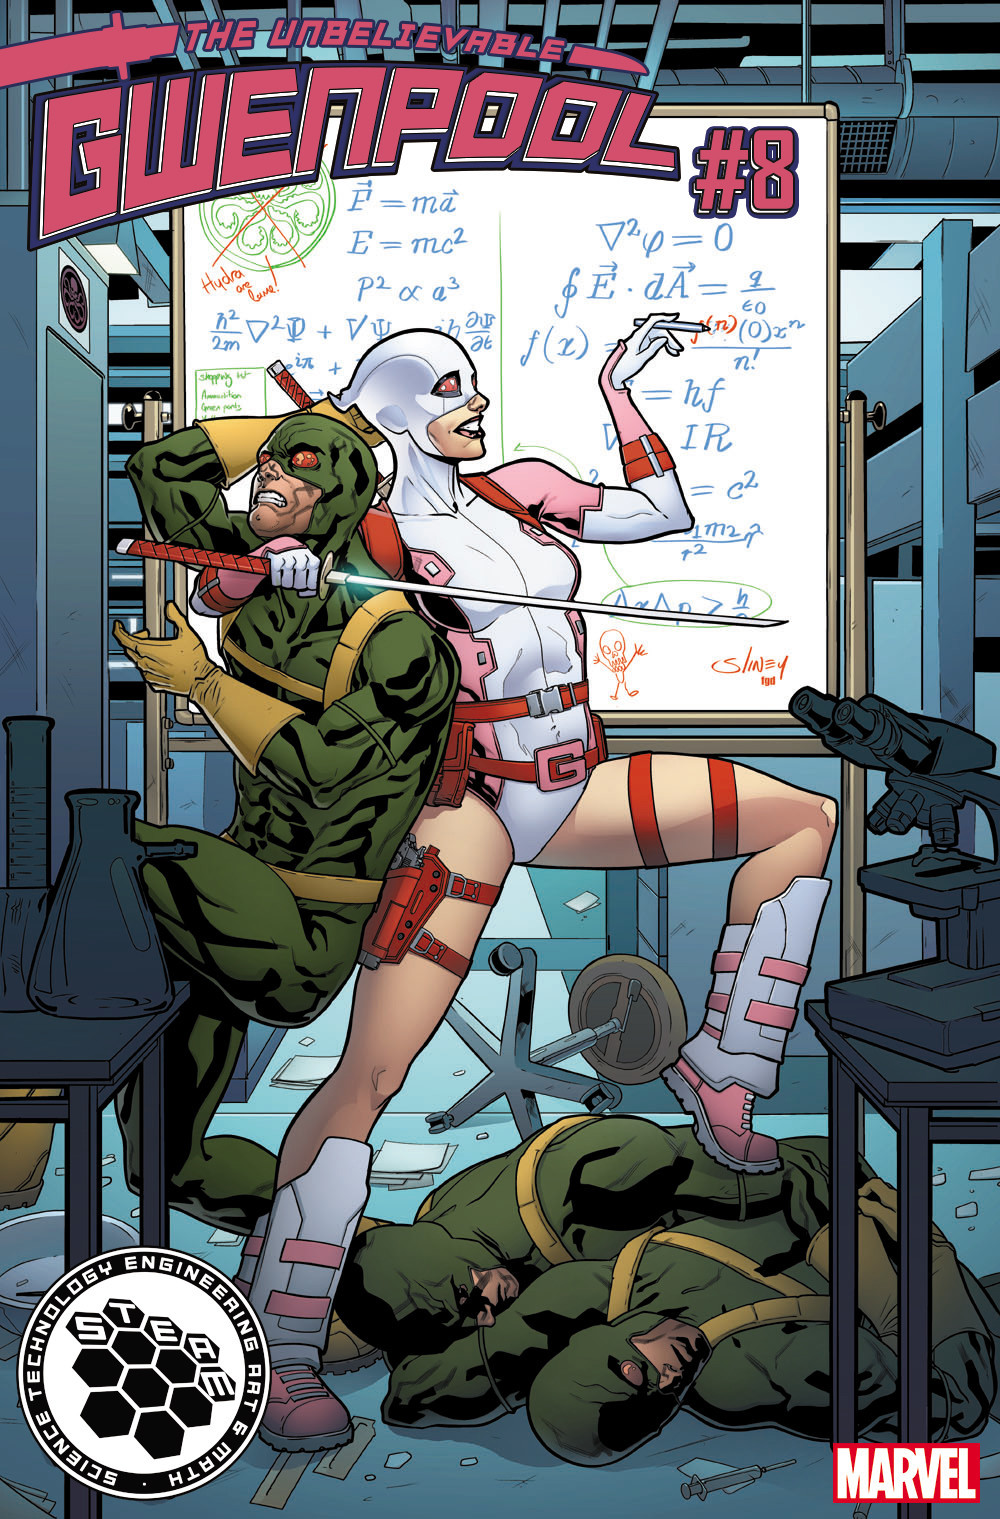 """""""Gwenpool"""" No. 8 STEAM variant cover (math) by Will Sliney."""